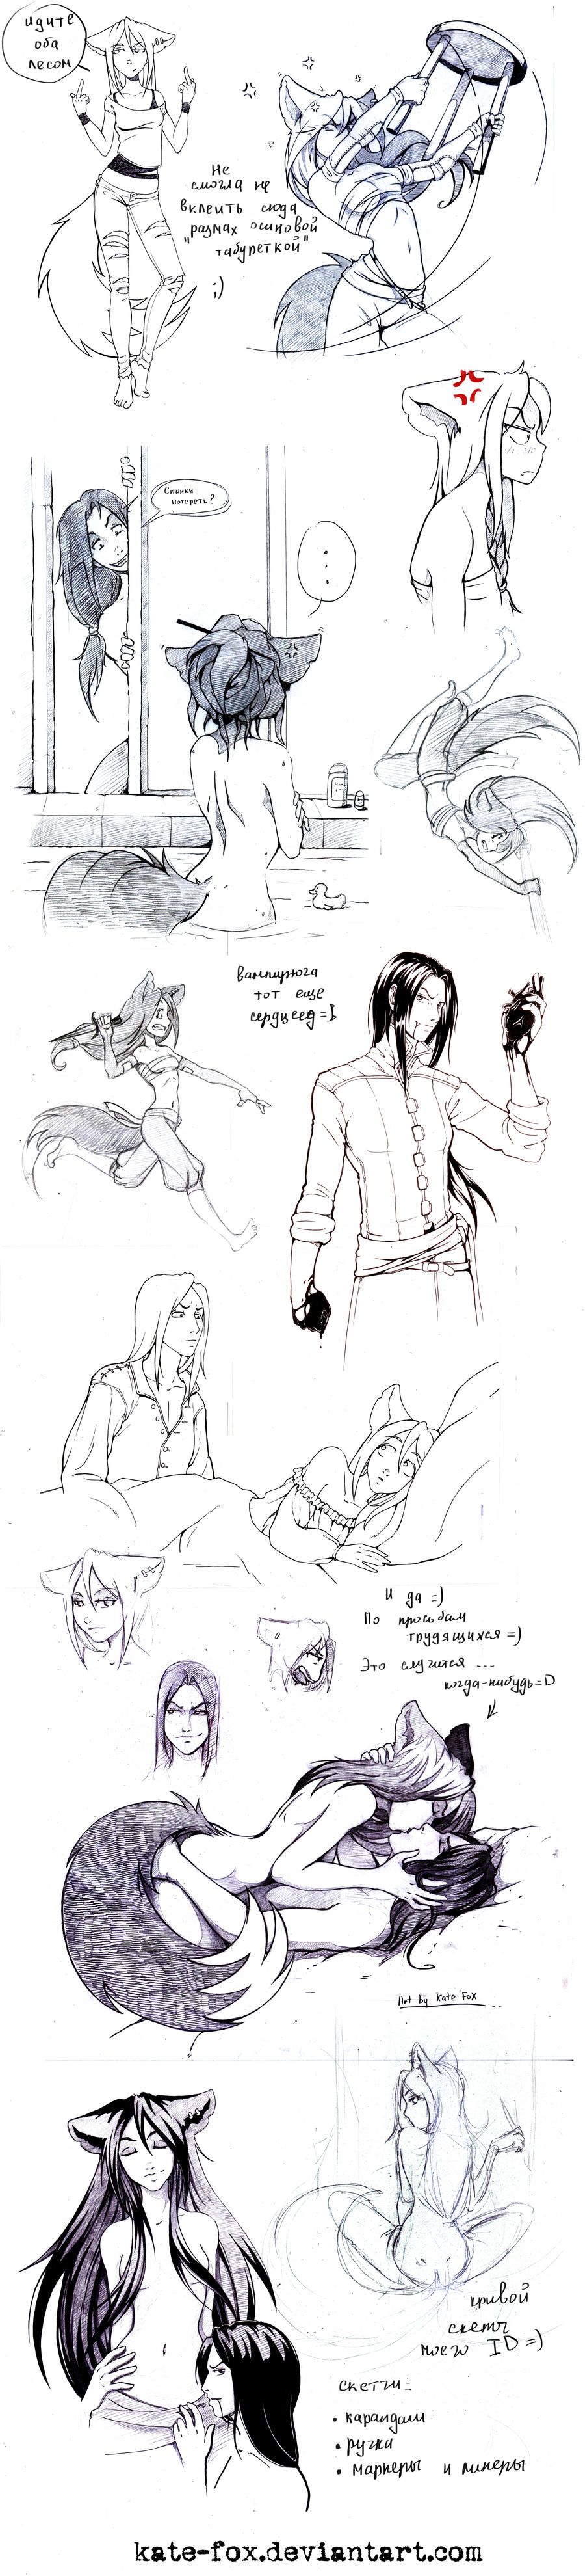 sketches9 by Kate-FoX